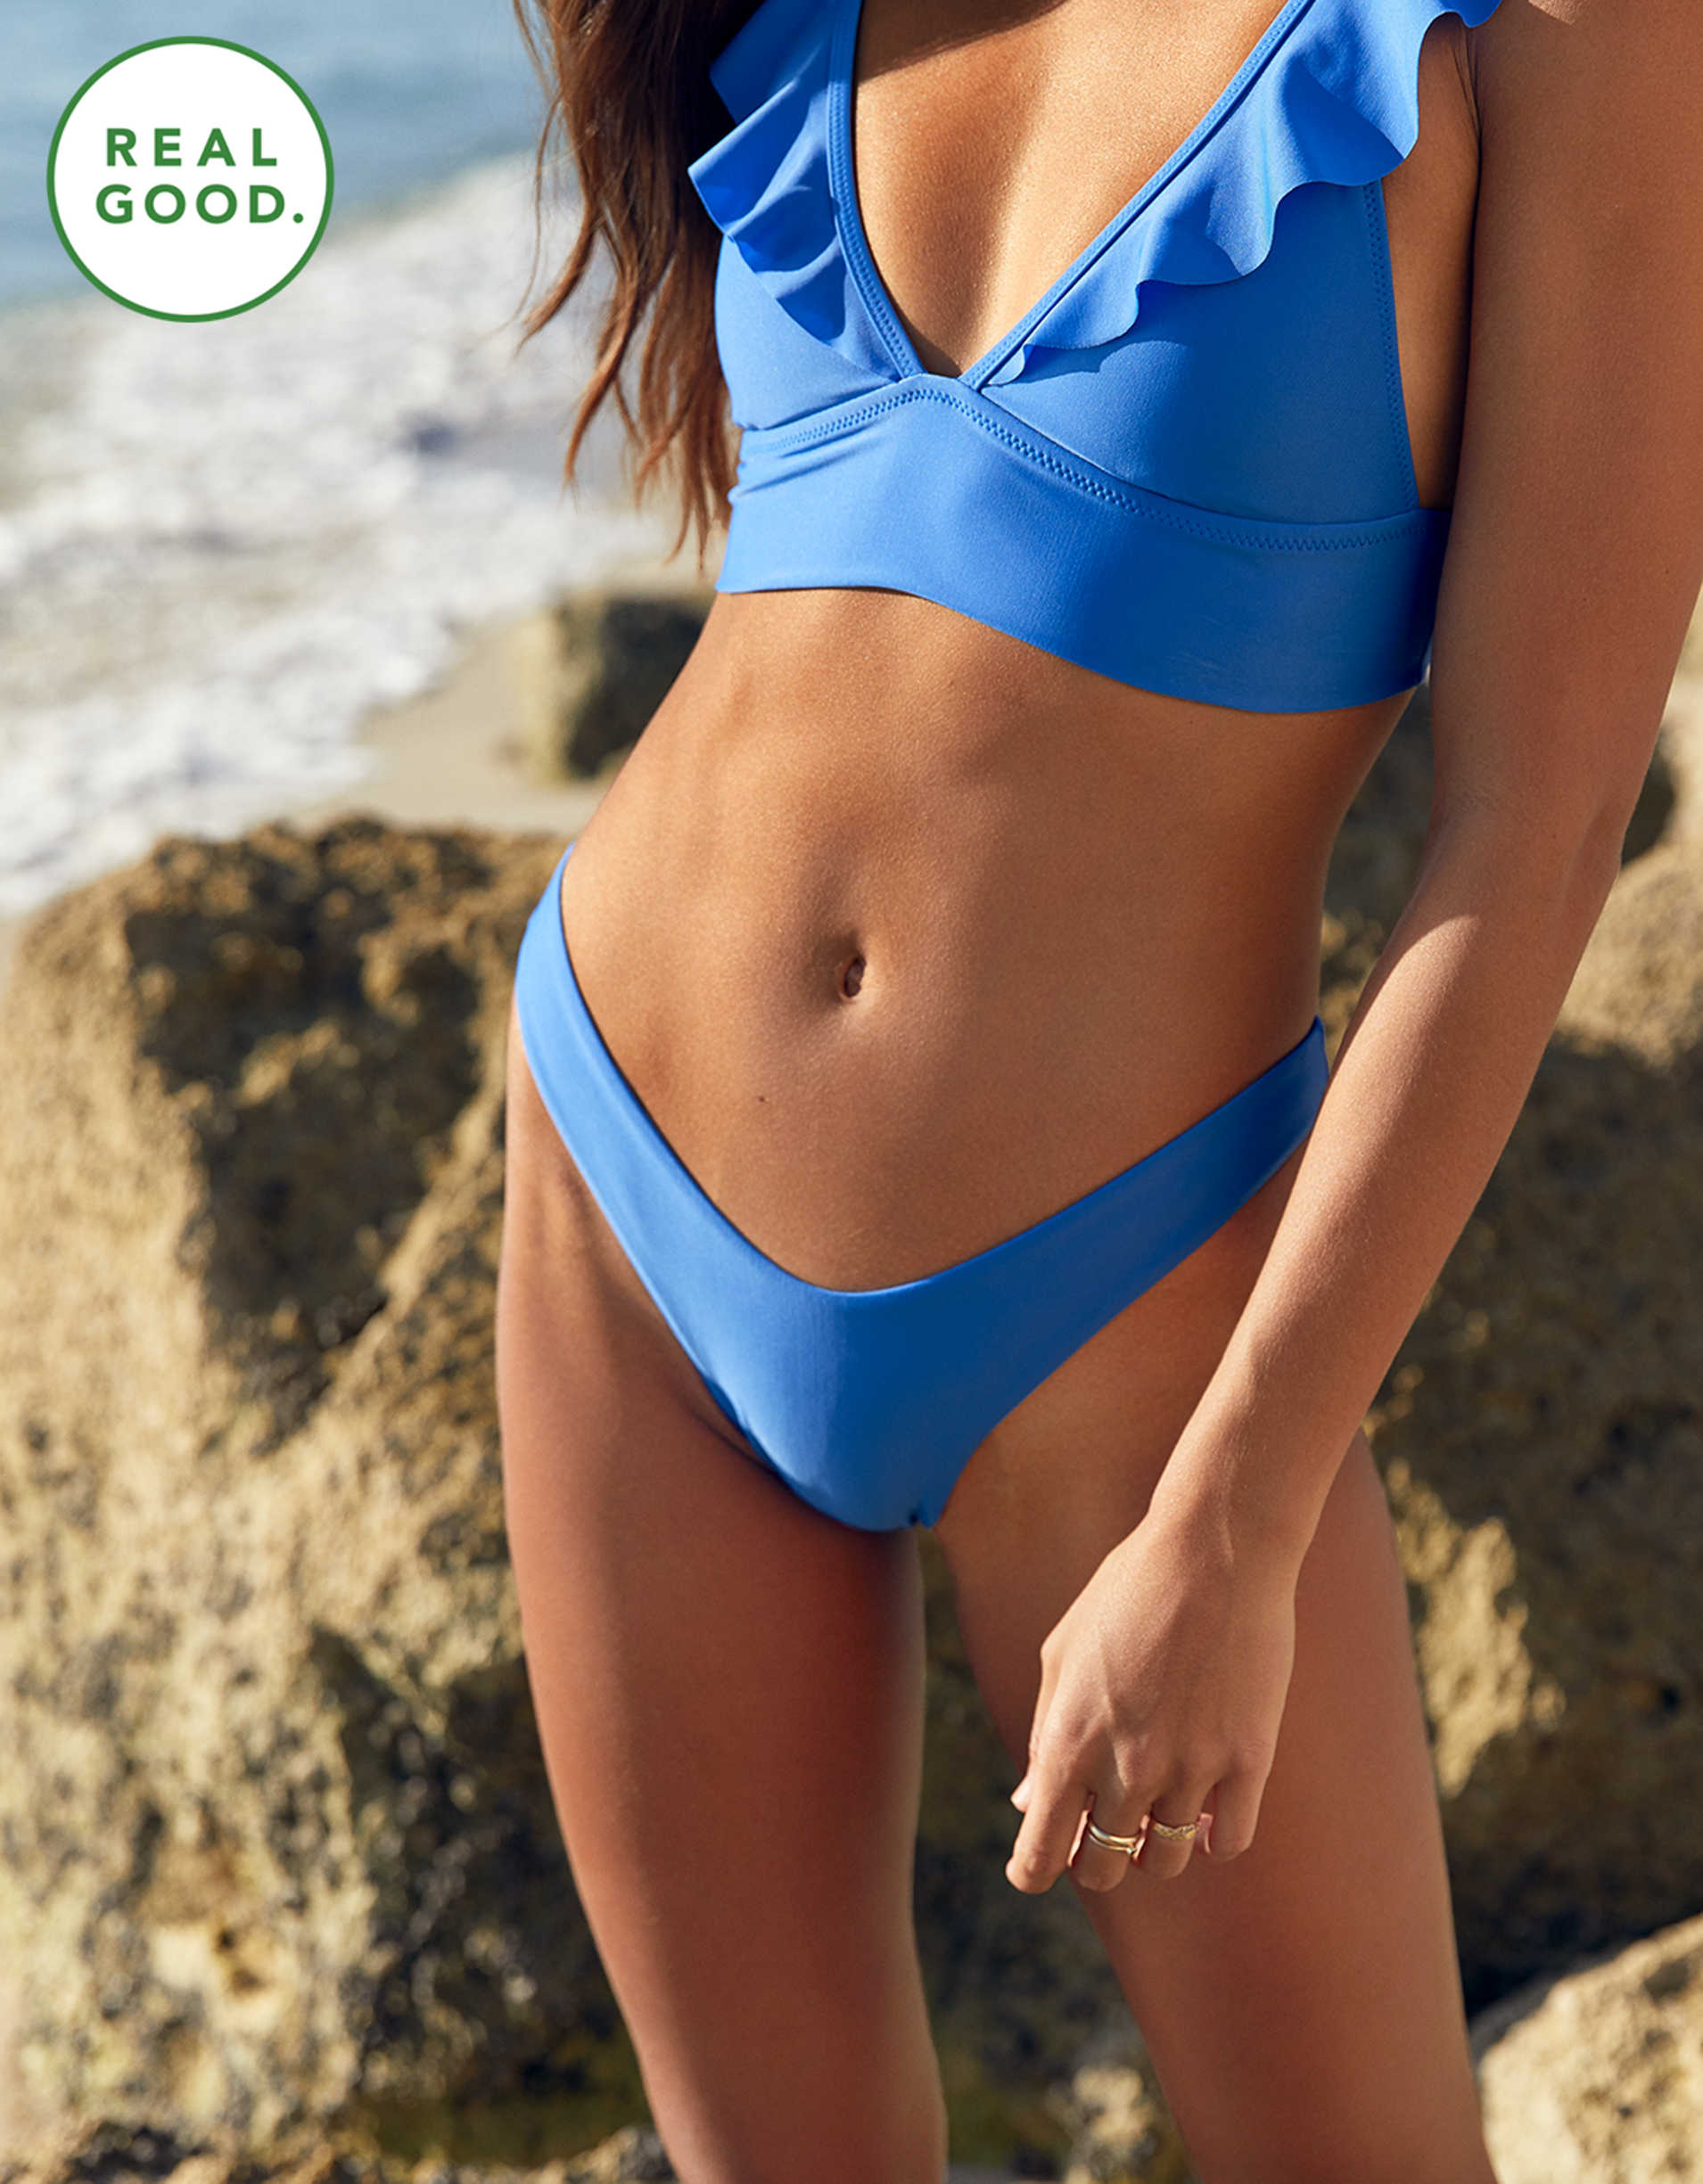 Aerie Super High Cut Cheekiest Bikini Bottom